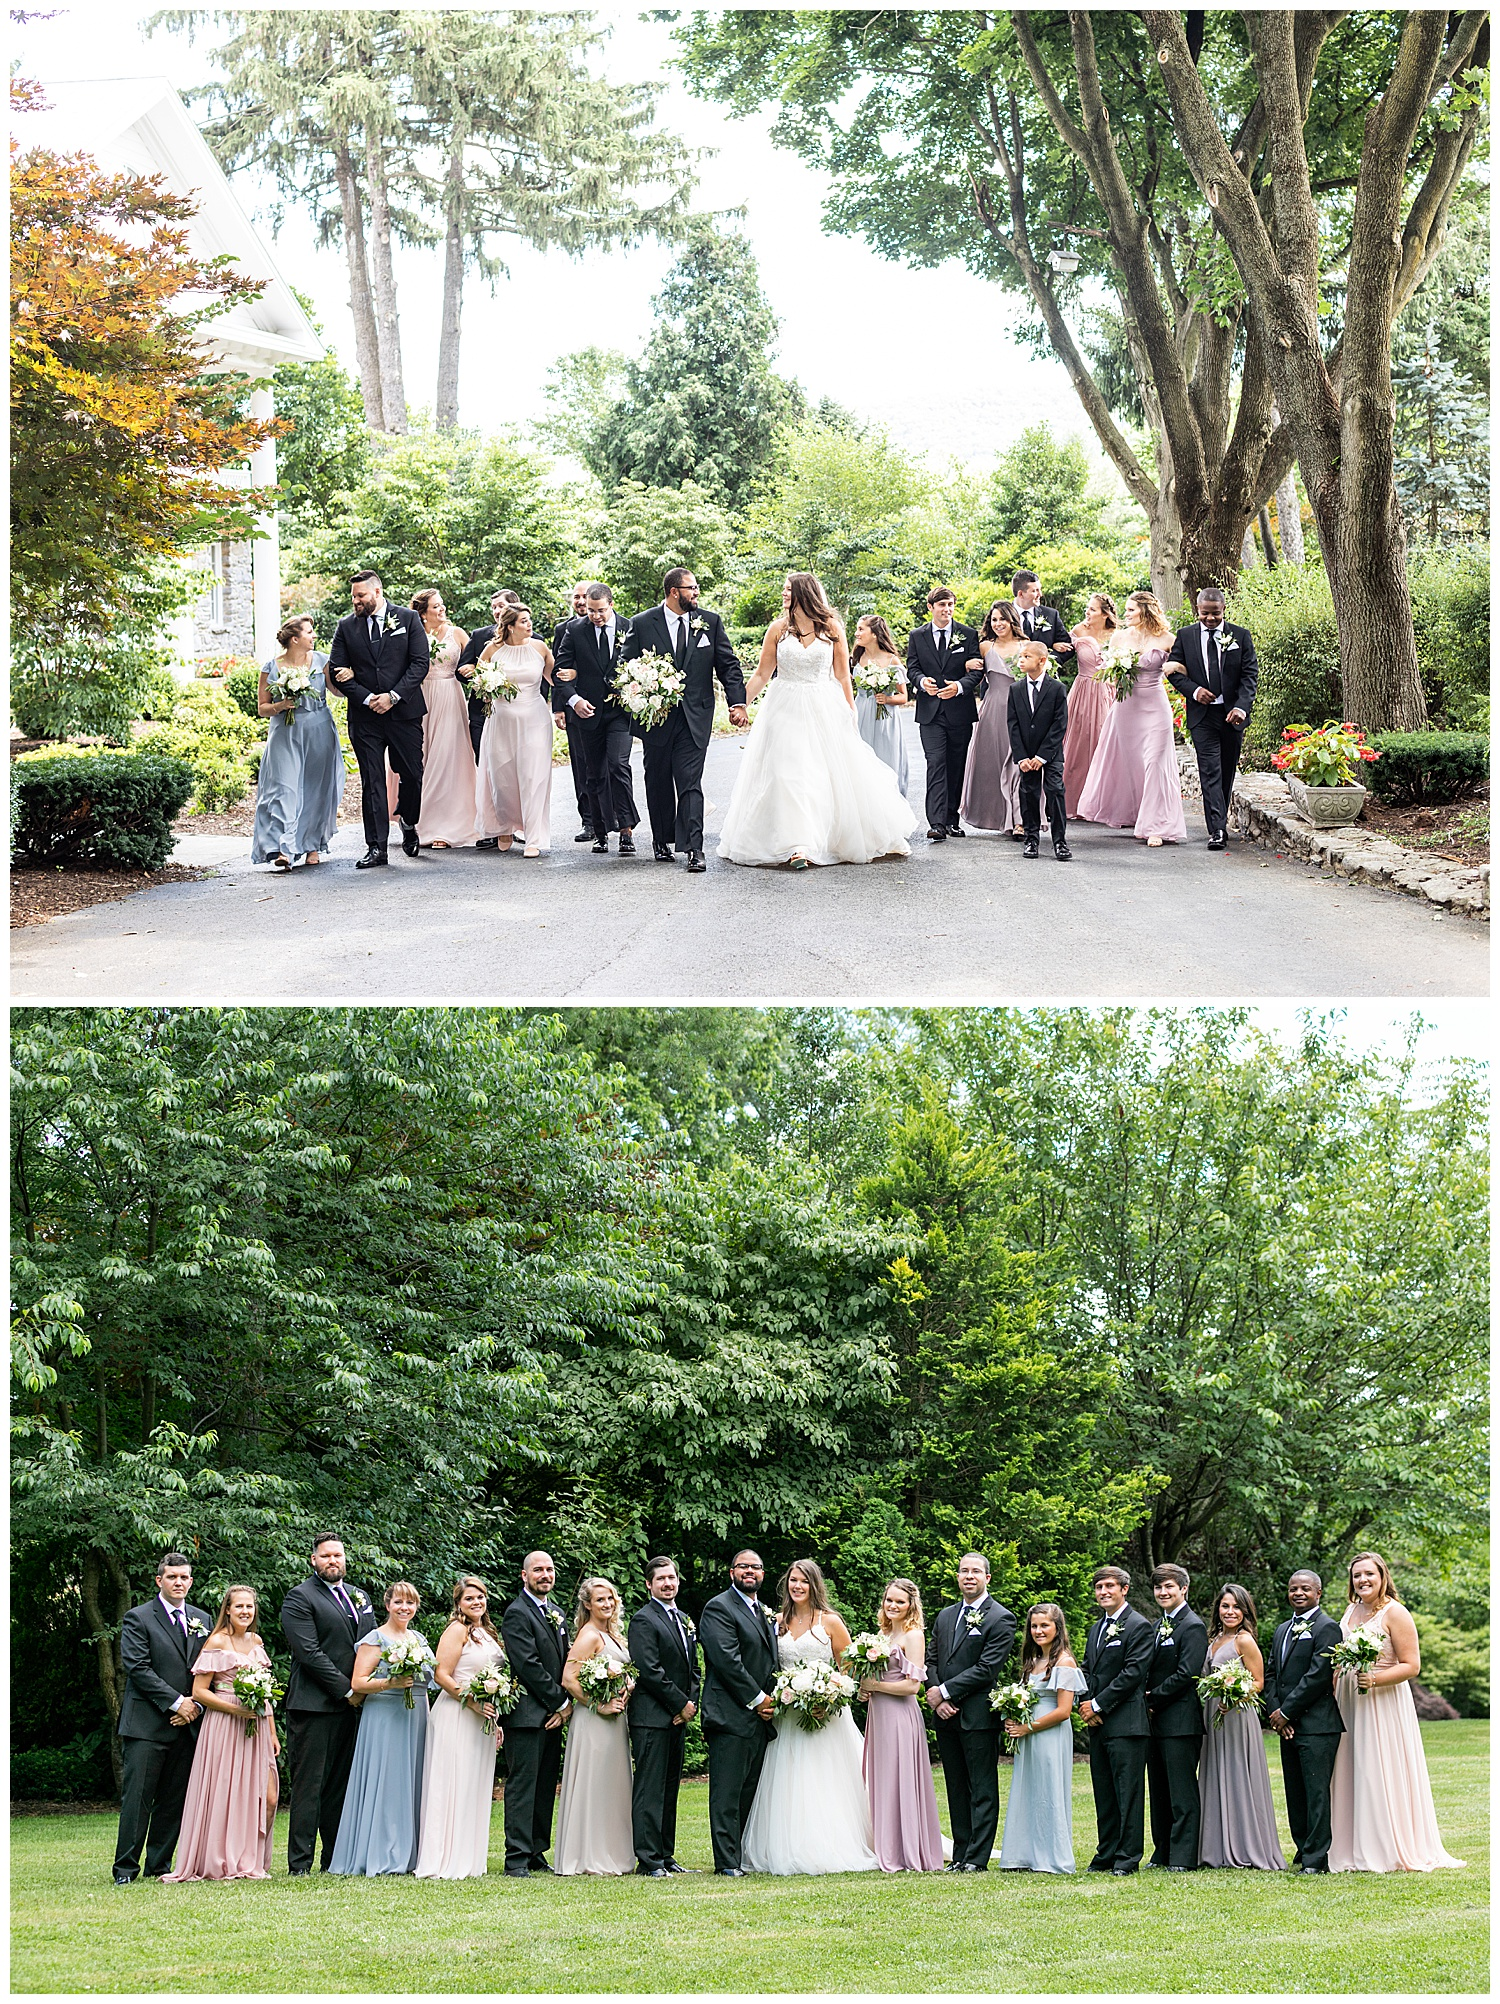 Brittany + Darryl Linwood Estate Wedding Living Radiant Photography photos_0061a.jpg